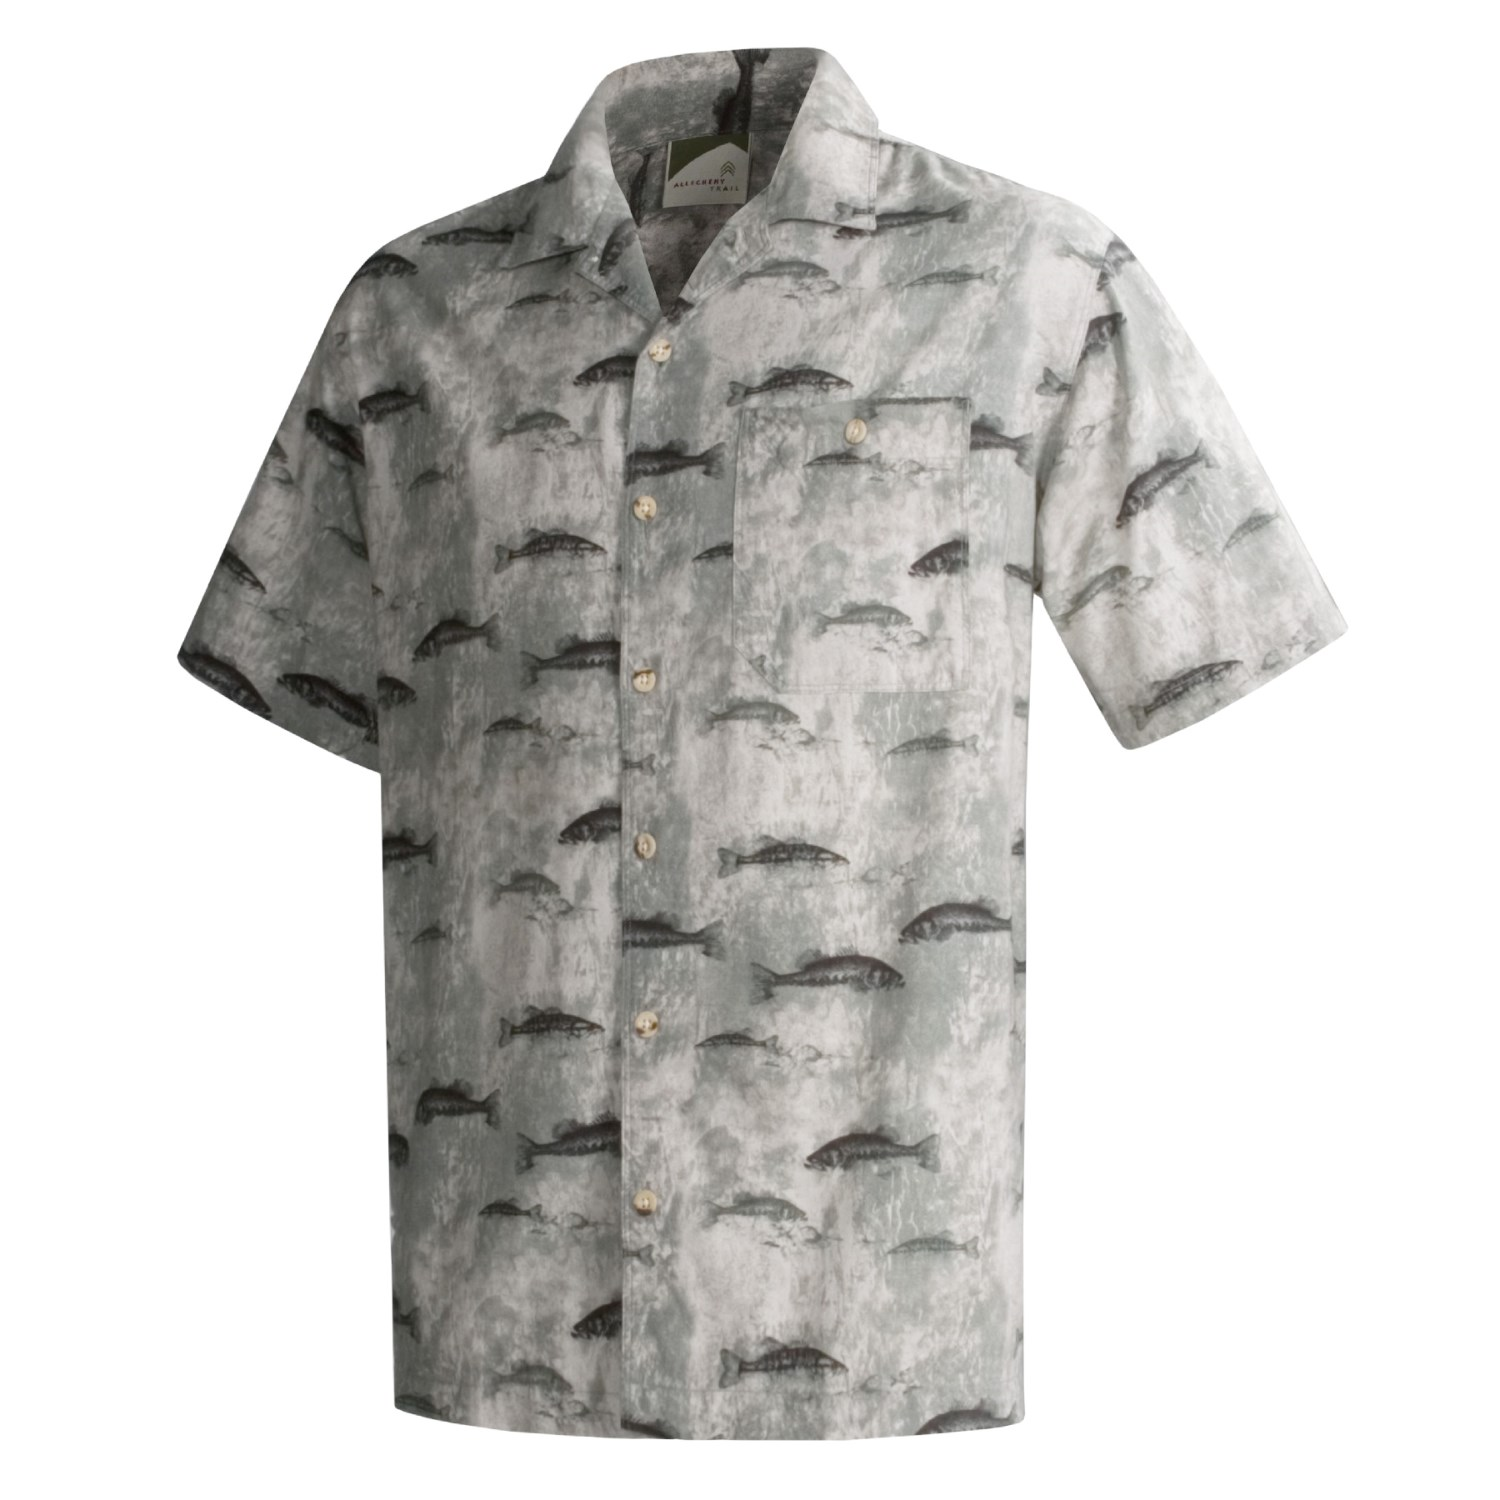 Allegheny Trail Cotton Fish Print Shirt For Men 33650